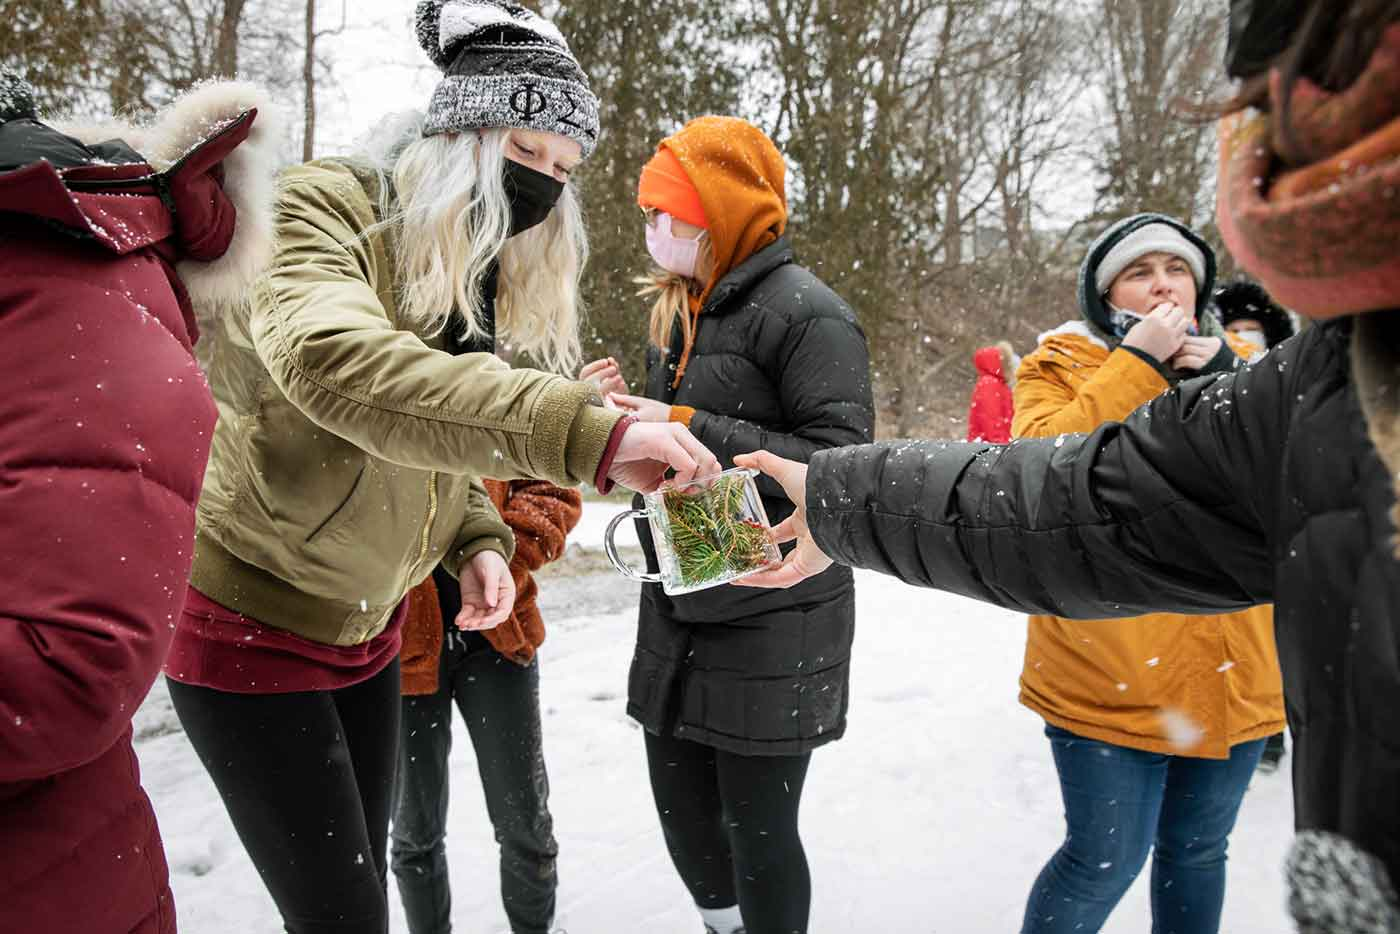 Students are outside in a snowy field collecting plants